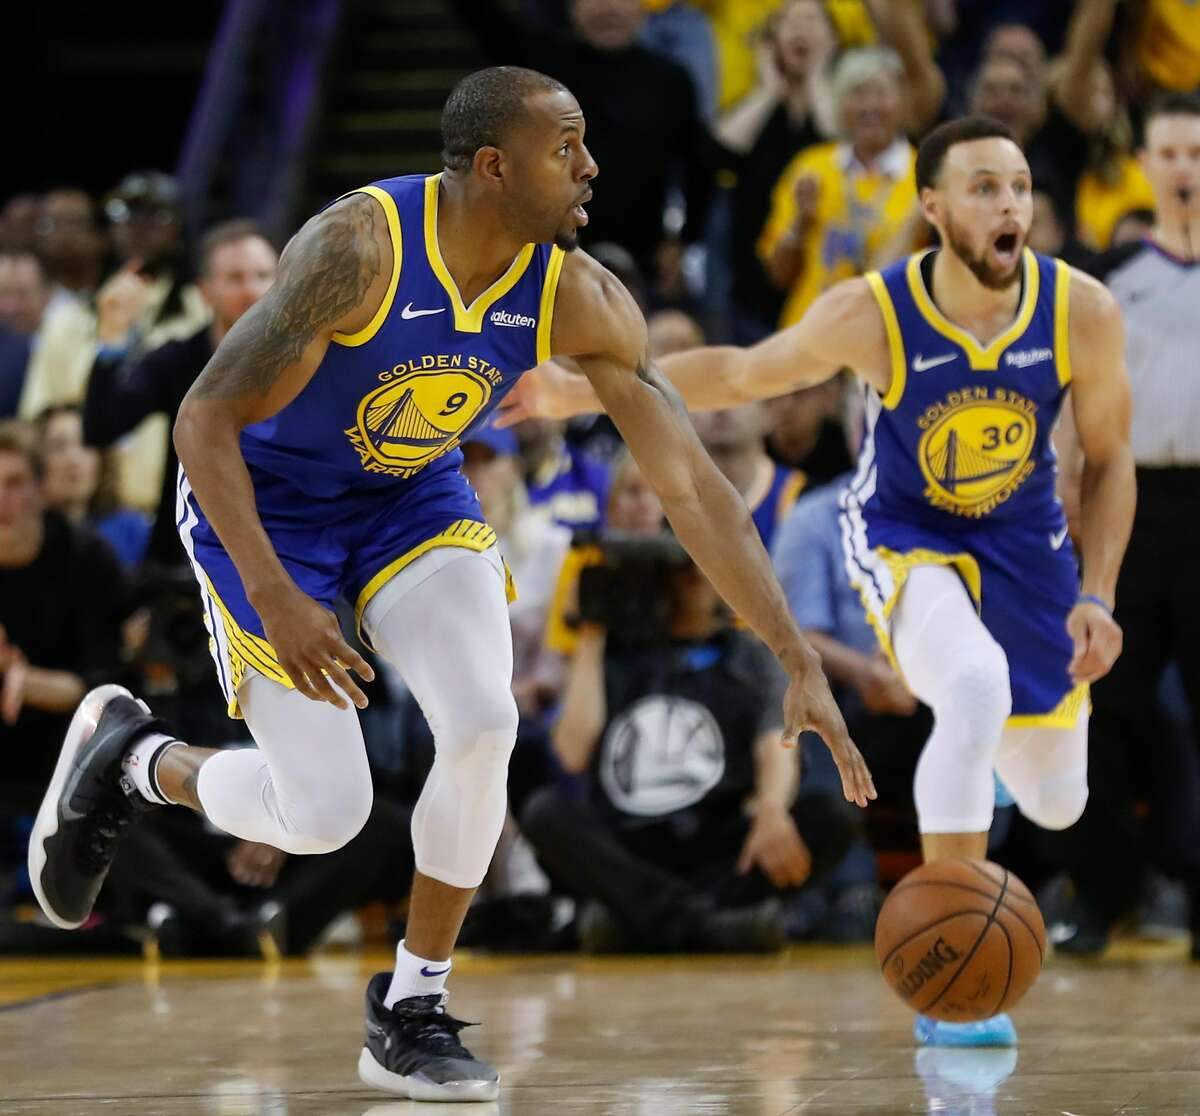 Golden State Warriors Andre Iguodala and Stephen Curry react to a foul call against Iguodala in the fourth quarter during game 5 of the Western Conference Playoffs between the Golden State Warriors and the Los Angeles Clippers at Oracle Arena on Wednesday, April 24, 2019 in Oakland, Calif.